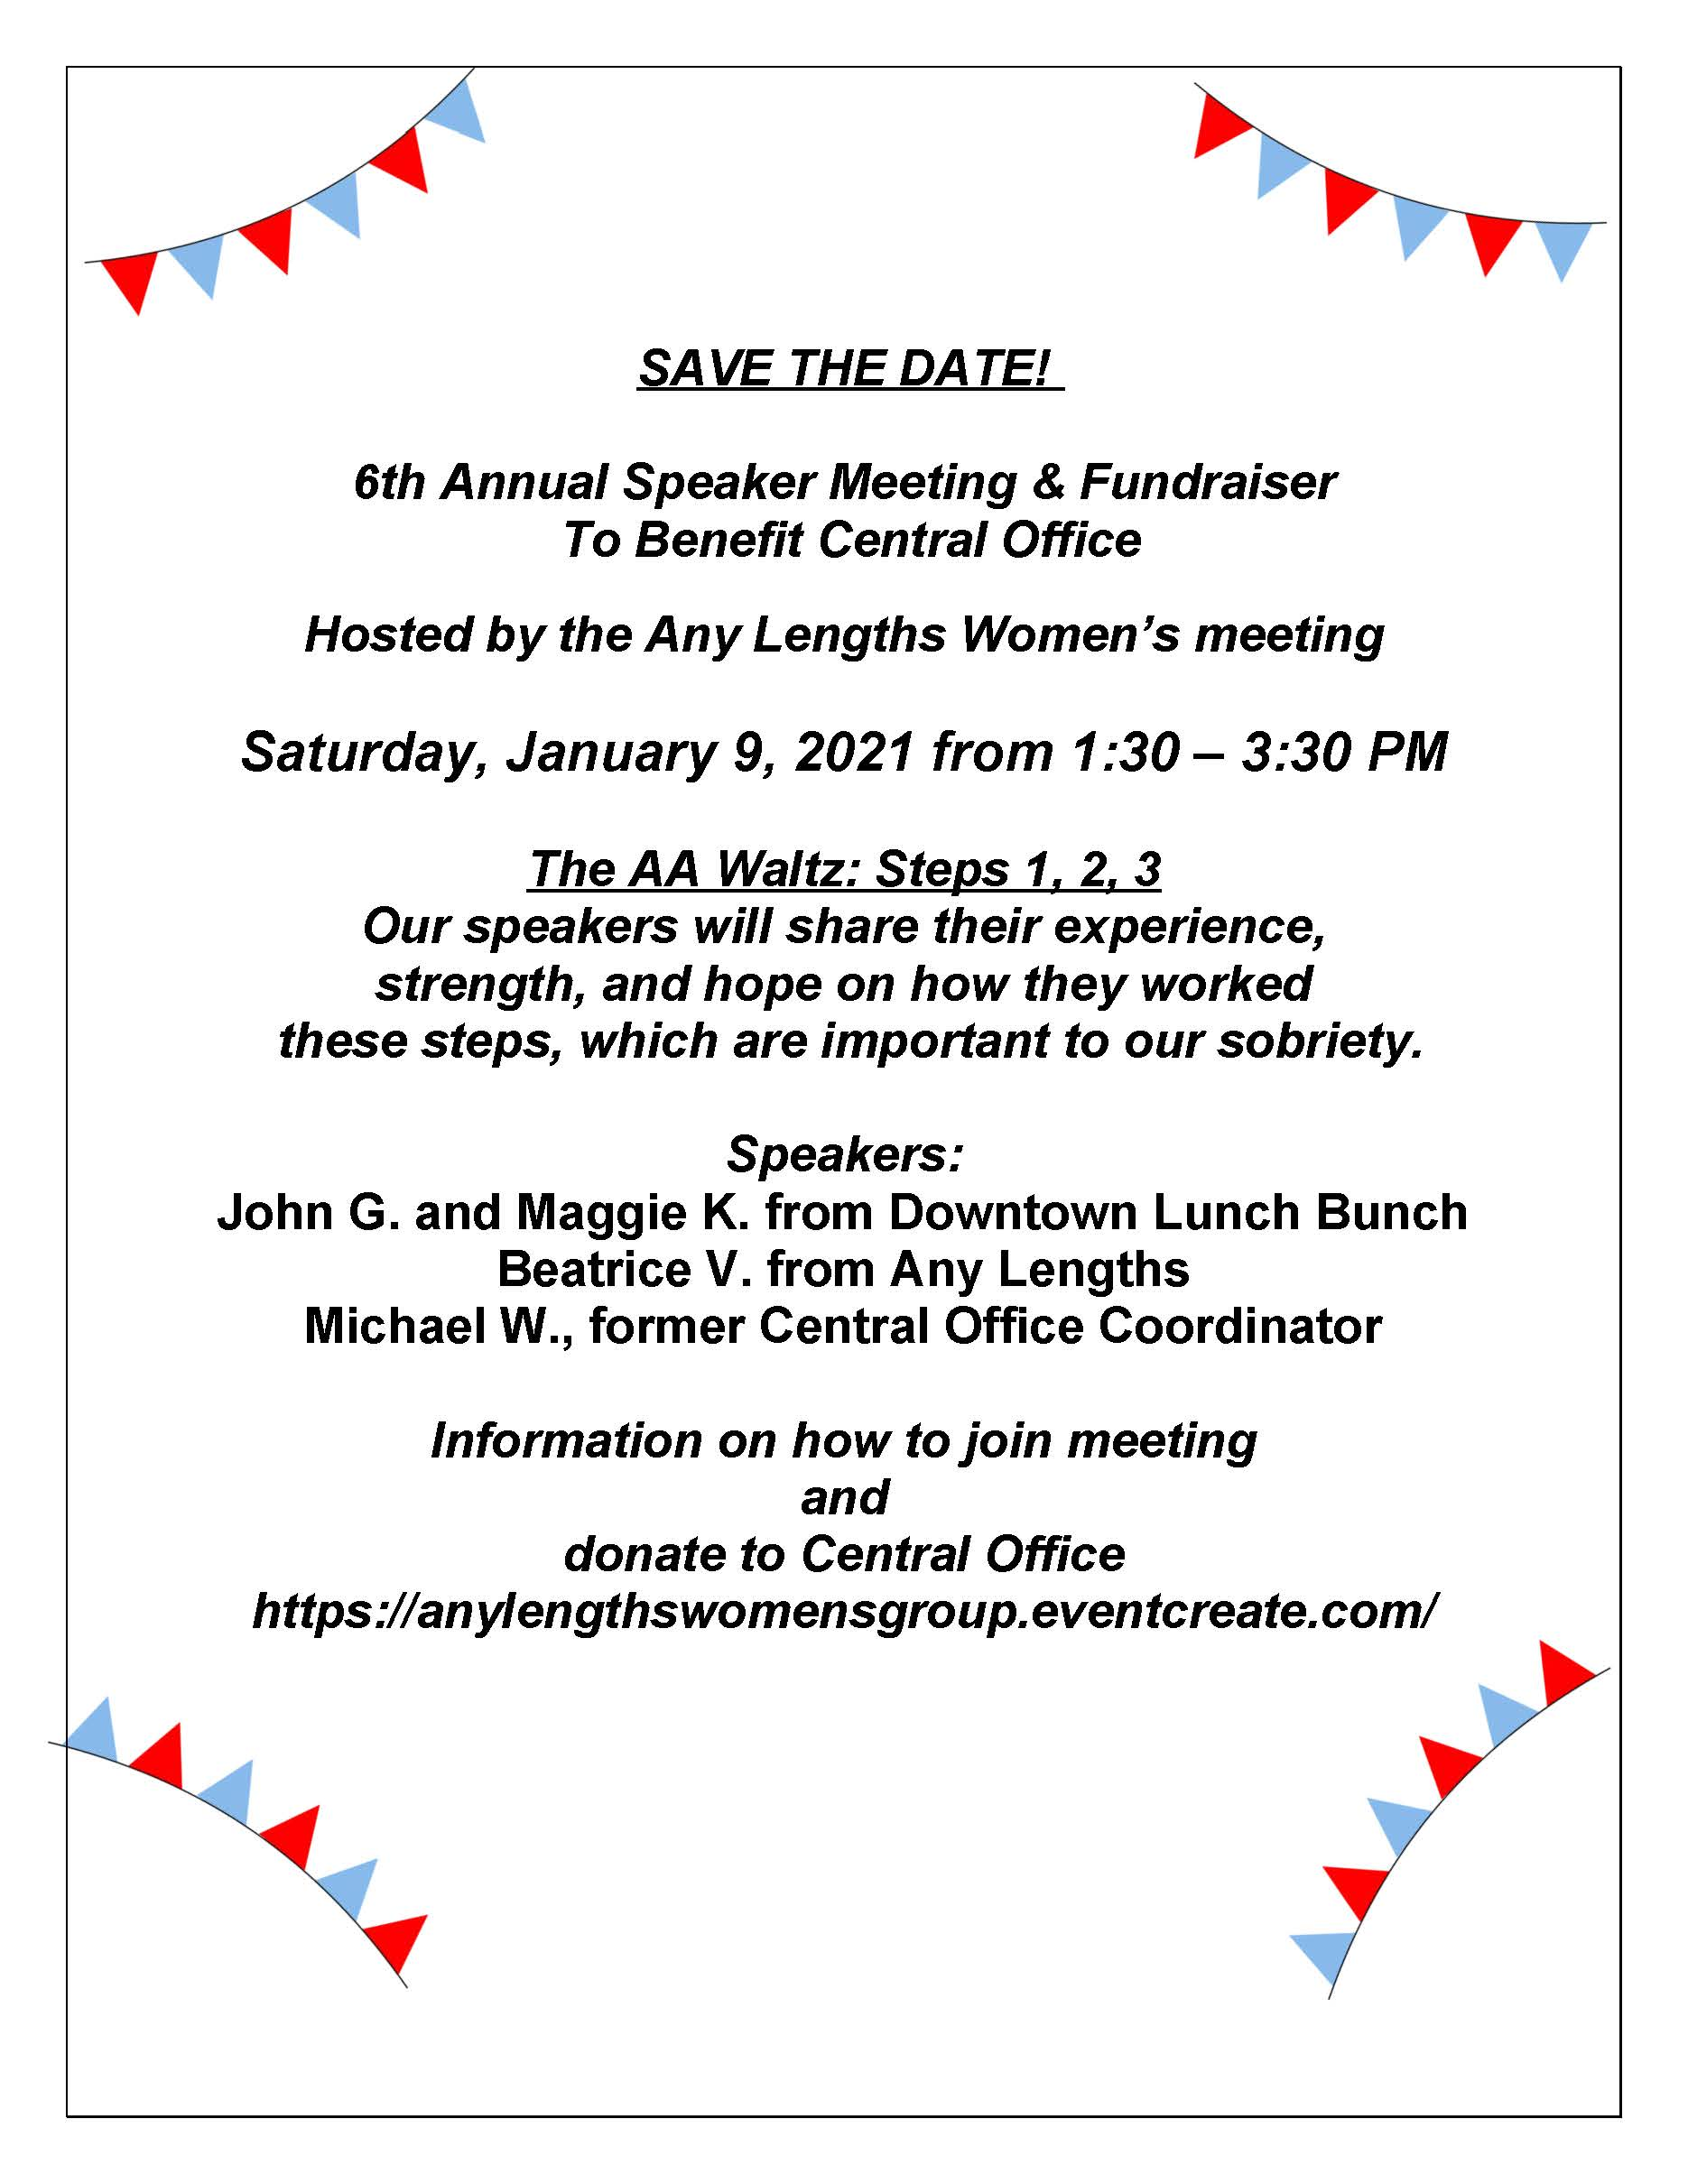 AA fundraiser flyer 2021_save the date